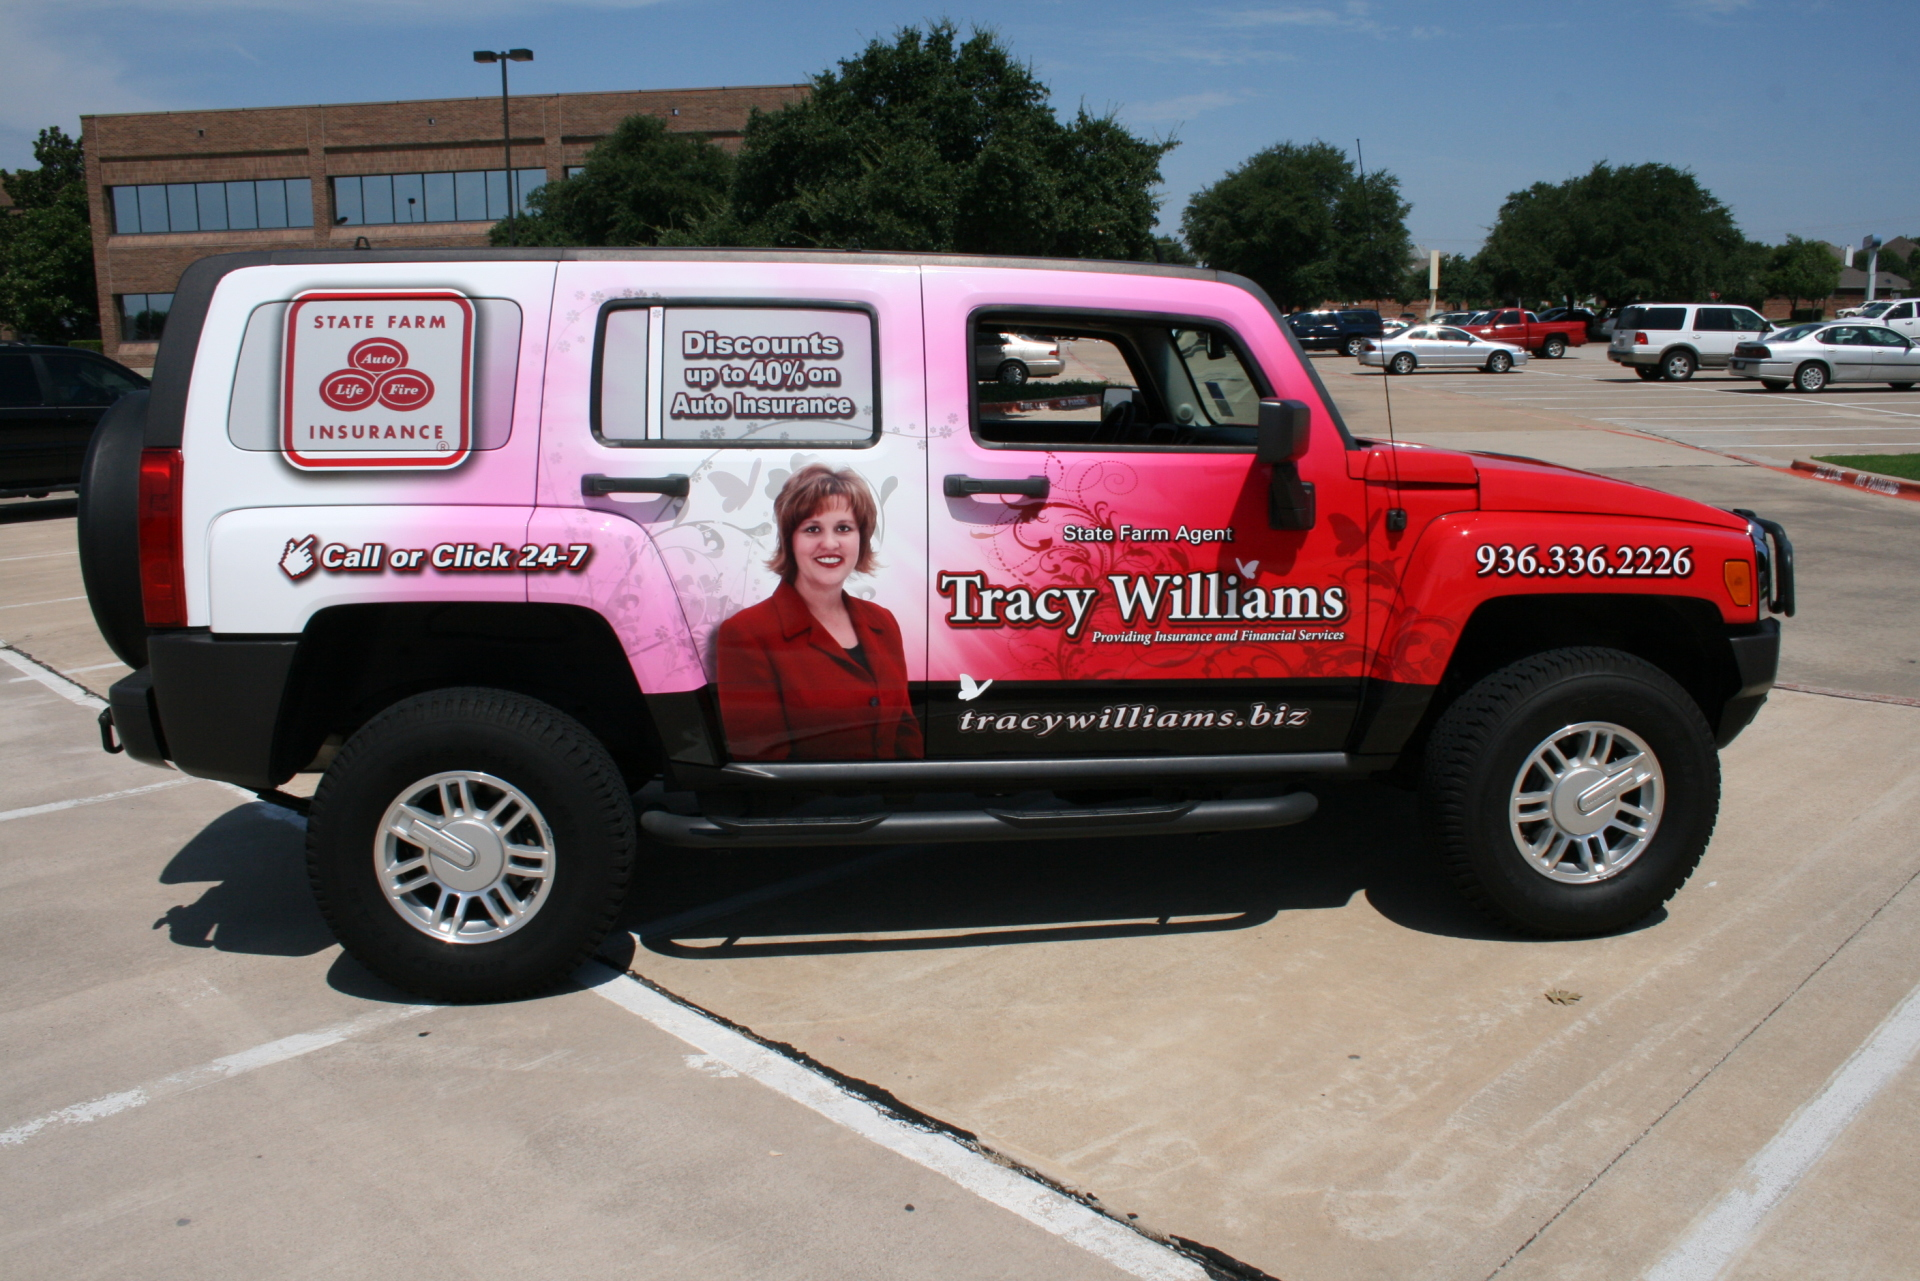 State Farm Agent Tracy Williams, State Farm Vehicle wraps, vehicle wrap dallas tx